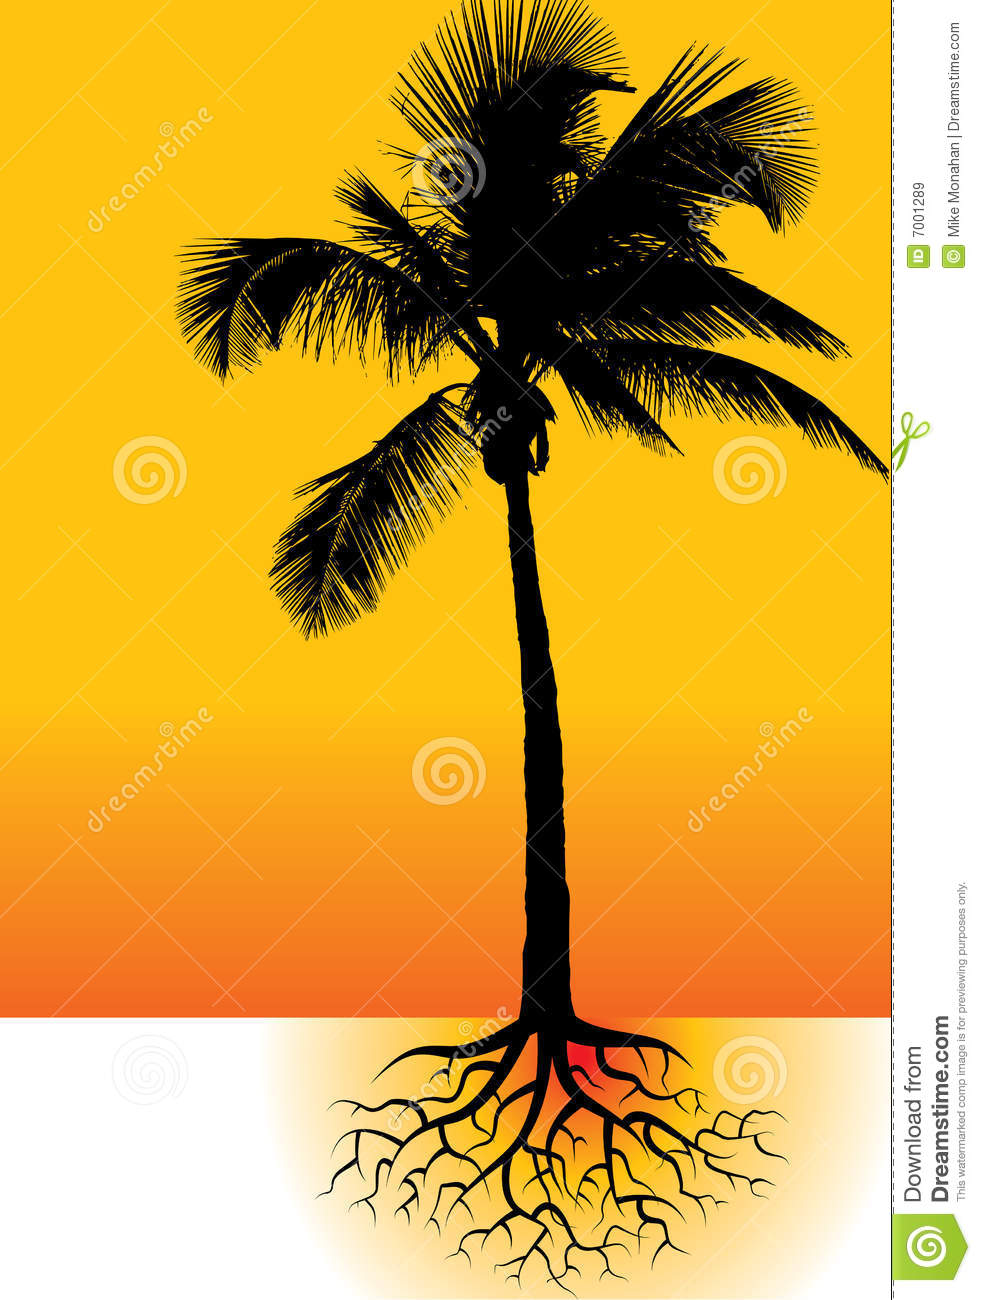 Palm tree root clipart #18